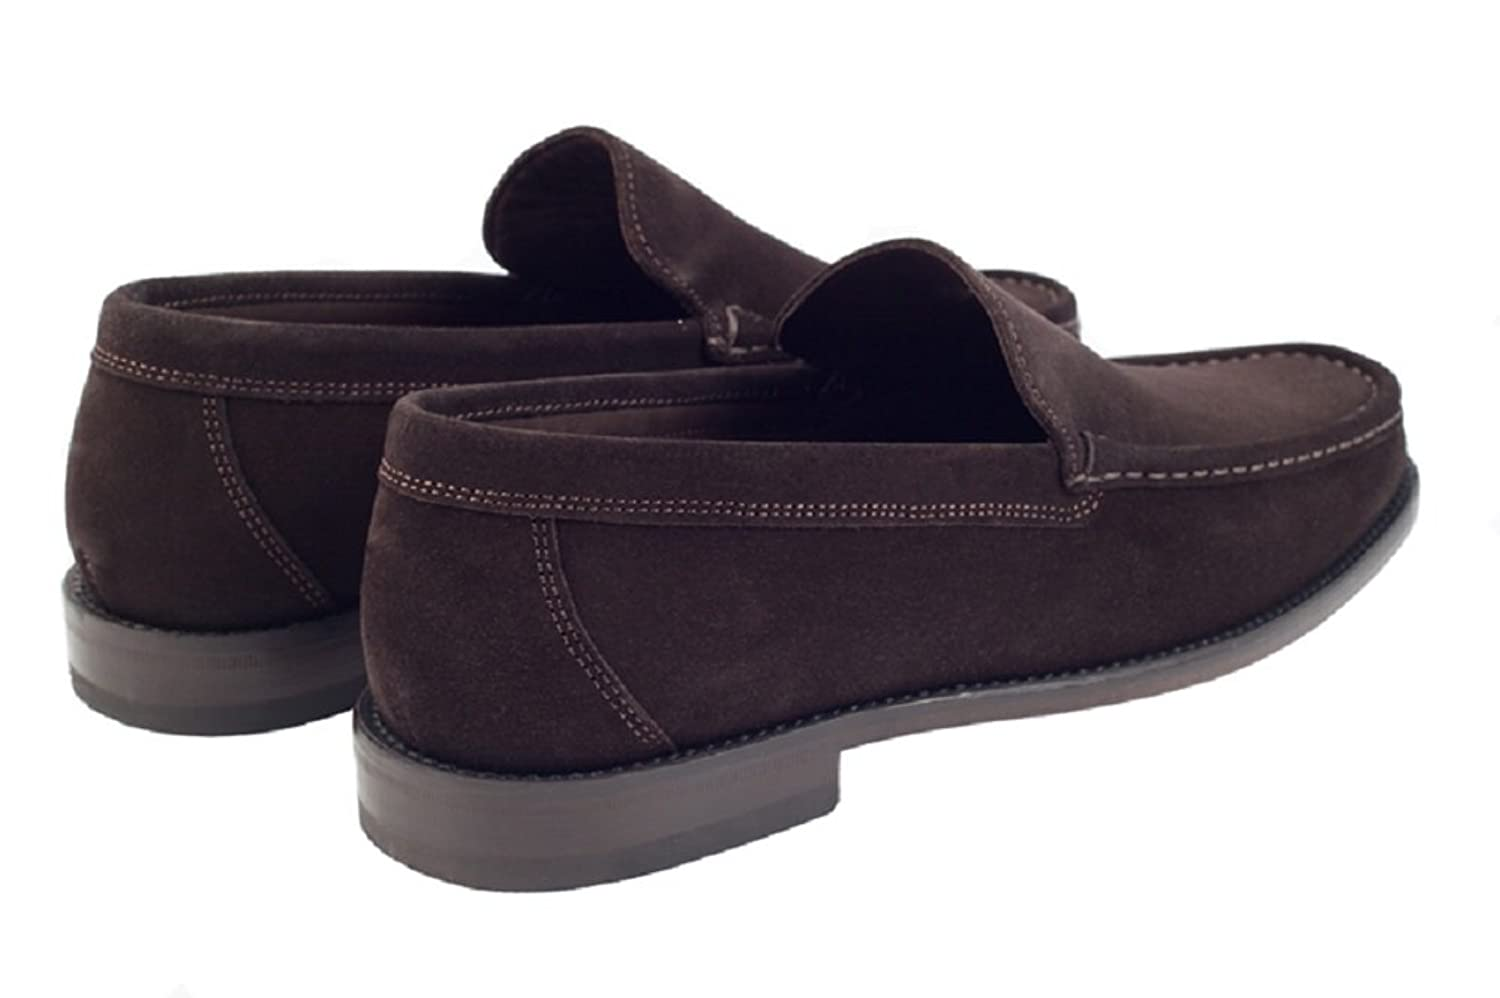 John White Men's Riva 2 Classic Moccasin Shoes In Black and Brown Leather  Suede.: Amazon.co.uk: Shoes & Bags